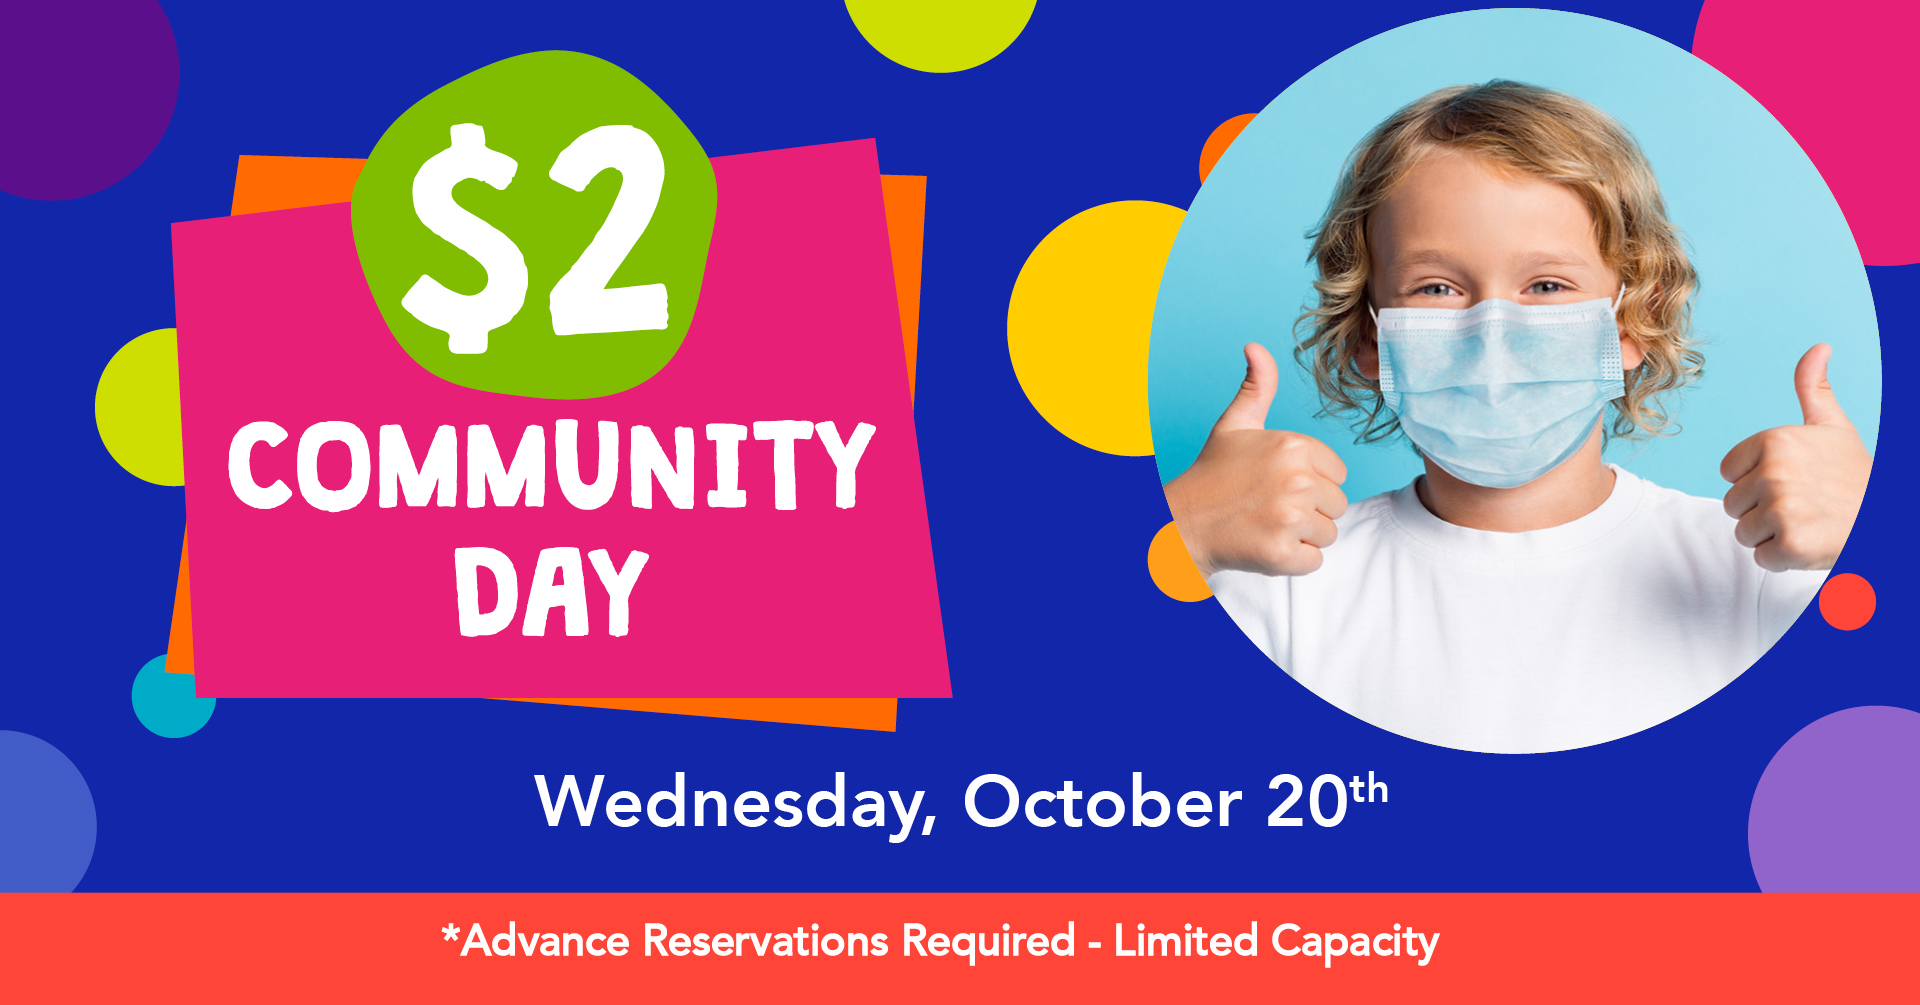 $2 Community Day Wednesday, October 20th Advance Reservations Required- Limited Capacity